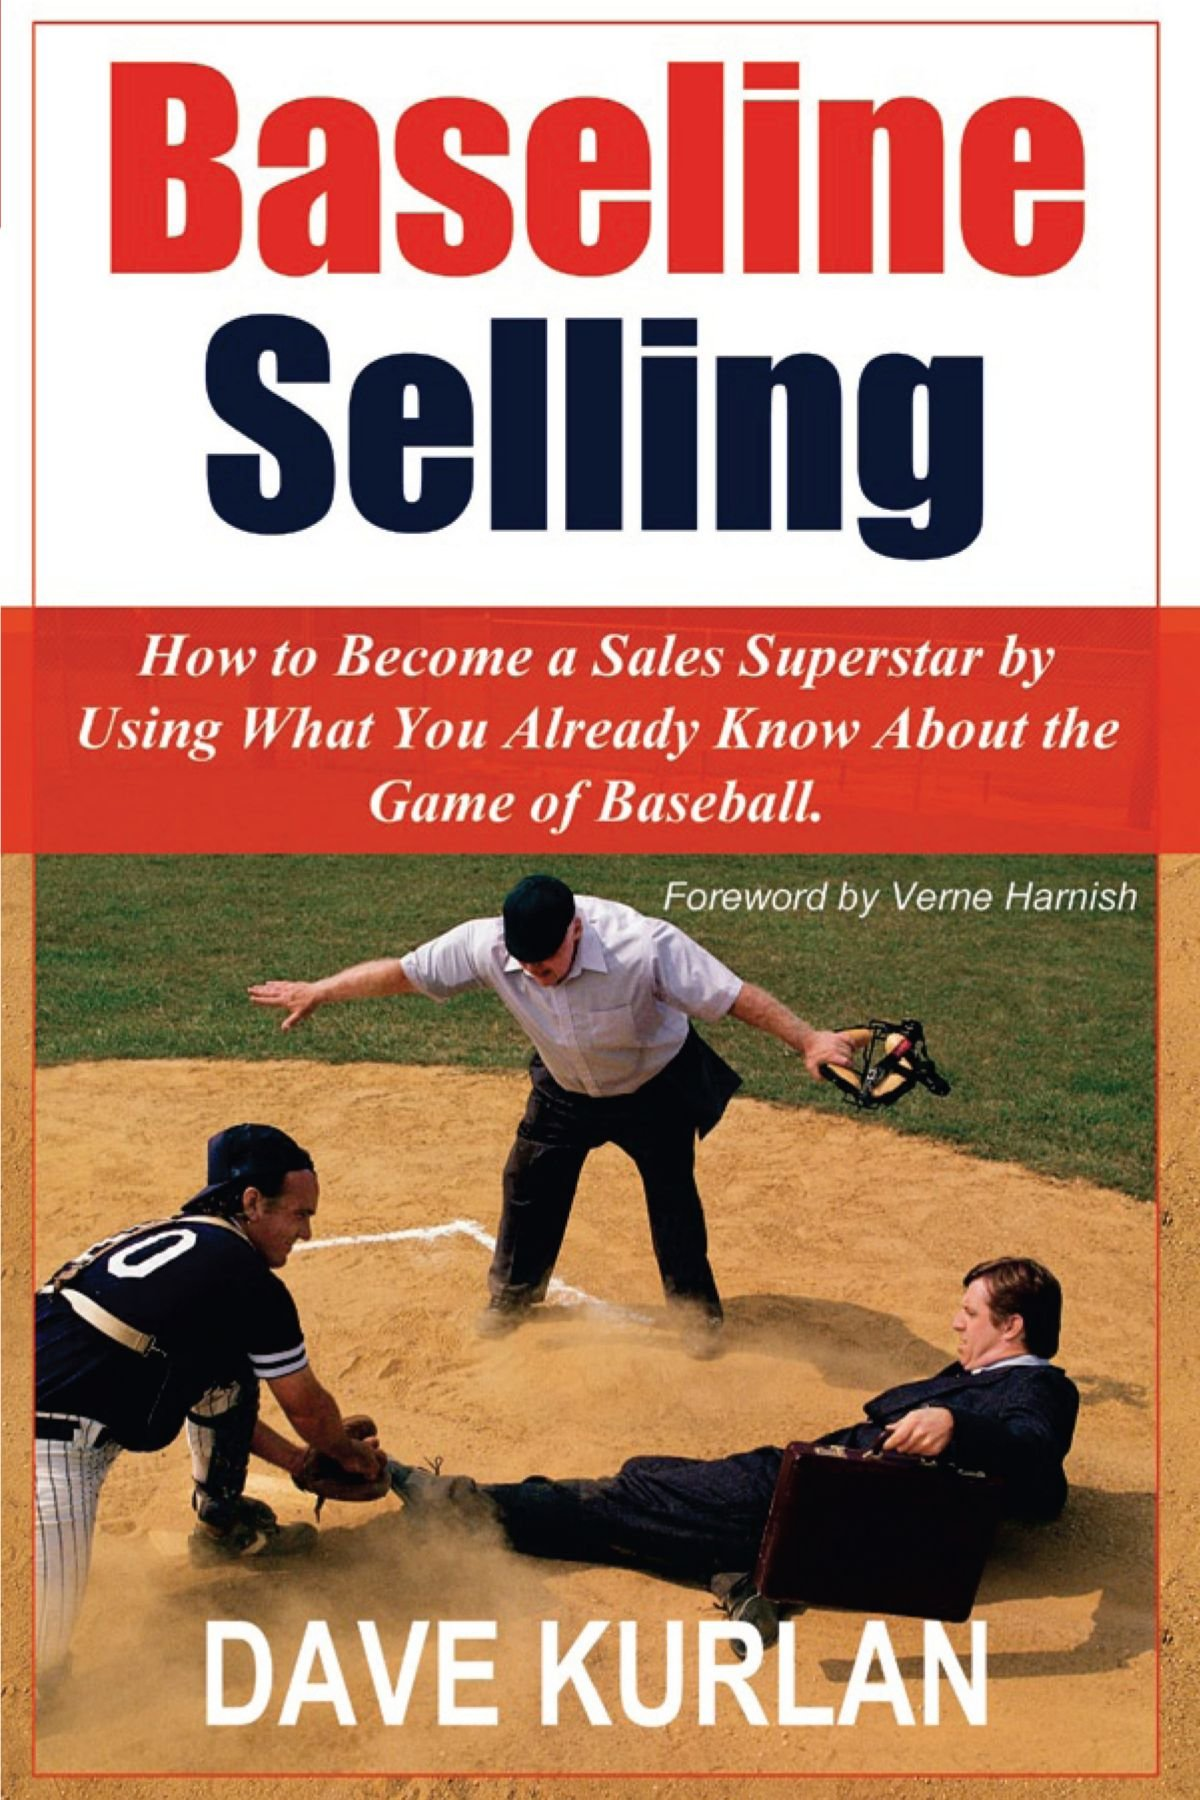 Amazon on baseline - Baseline Selling How To Become A Sales Superstar By Using What You Already Know About The Game Of Baseball Dave Kurlan 9781420895674 Books Amazon Ca